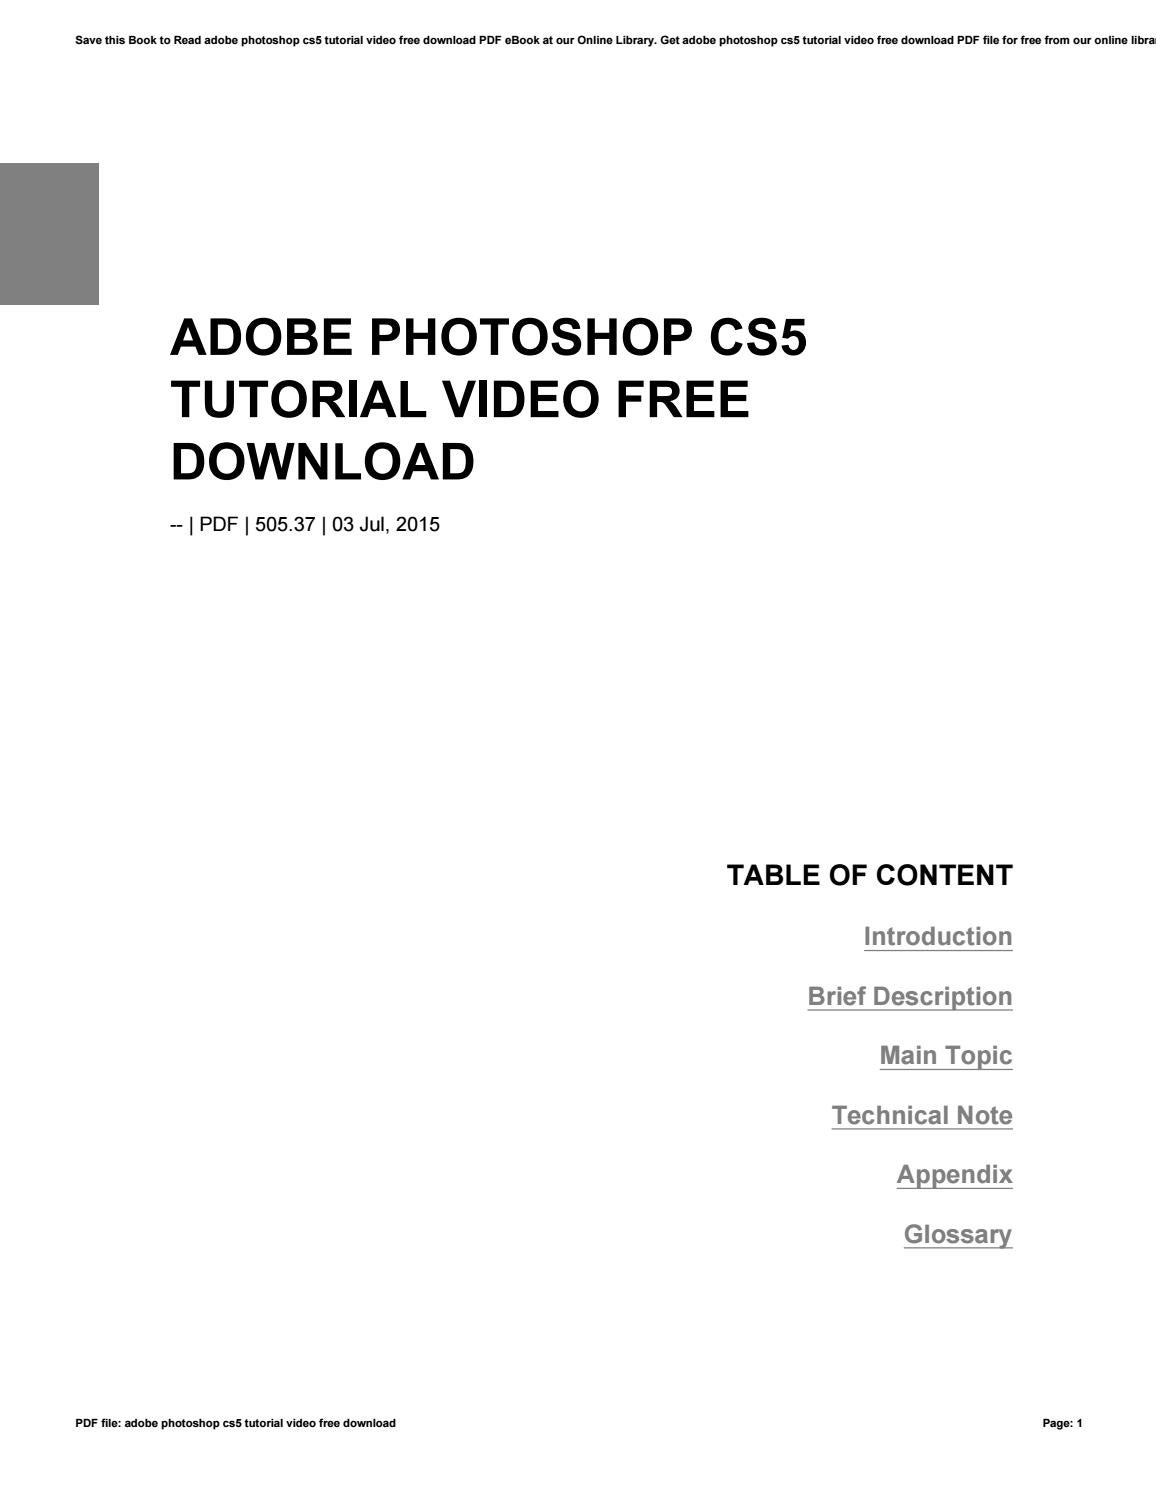 Adobe photoshop cs5 tutorial video free download by lordsofts8 issuu baditri Images